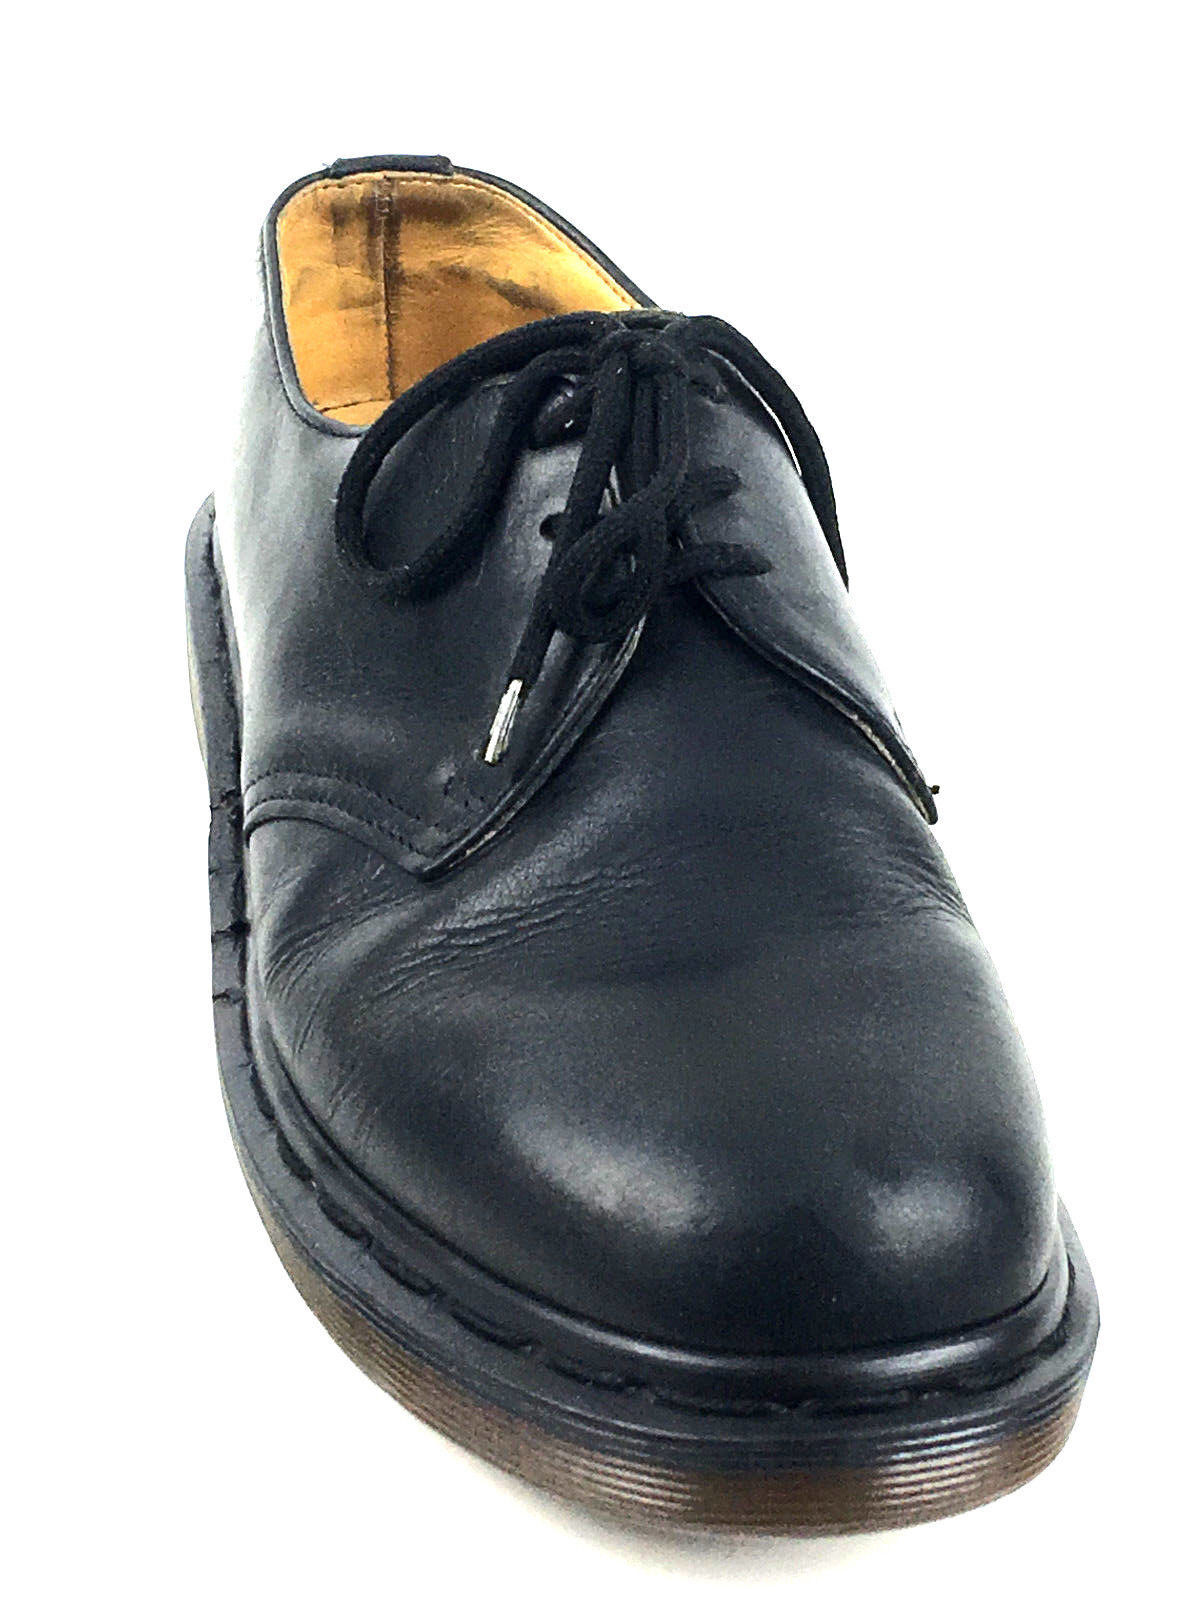 Dr. Martens 1461 Nero Oxford Made in England Size UK. 6   .8 EU.39.5